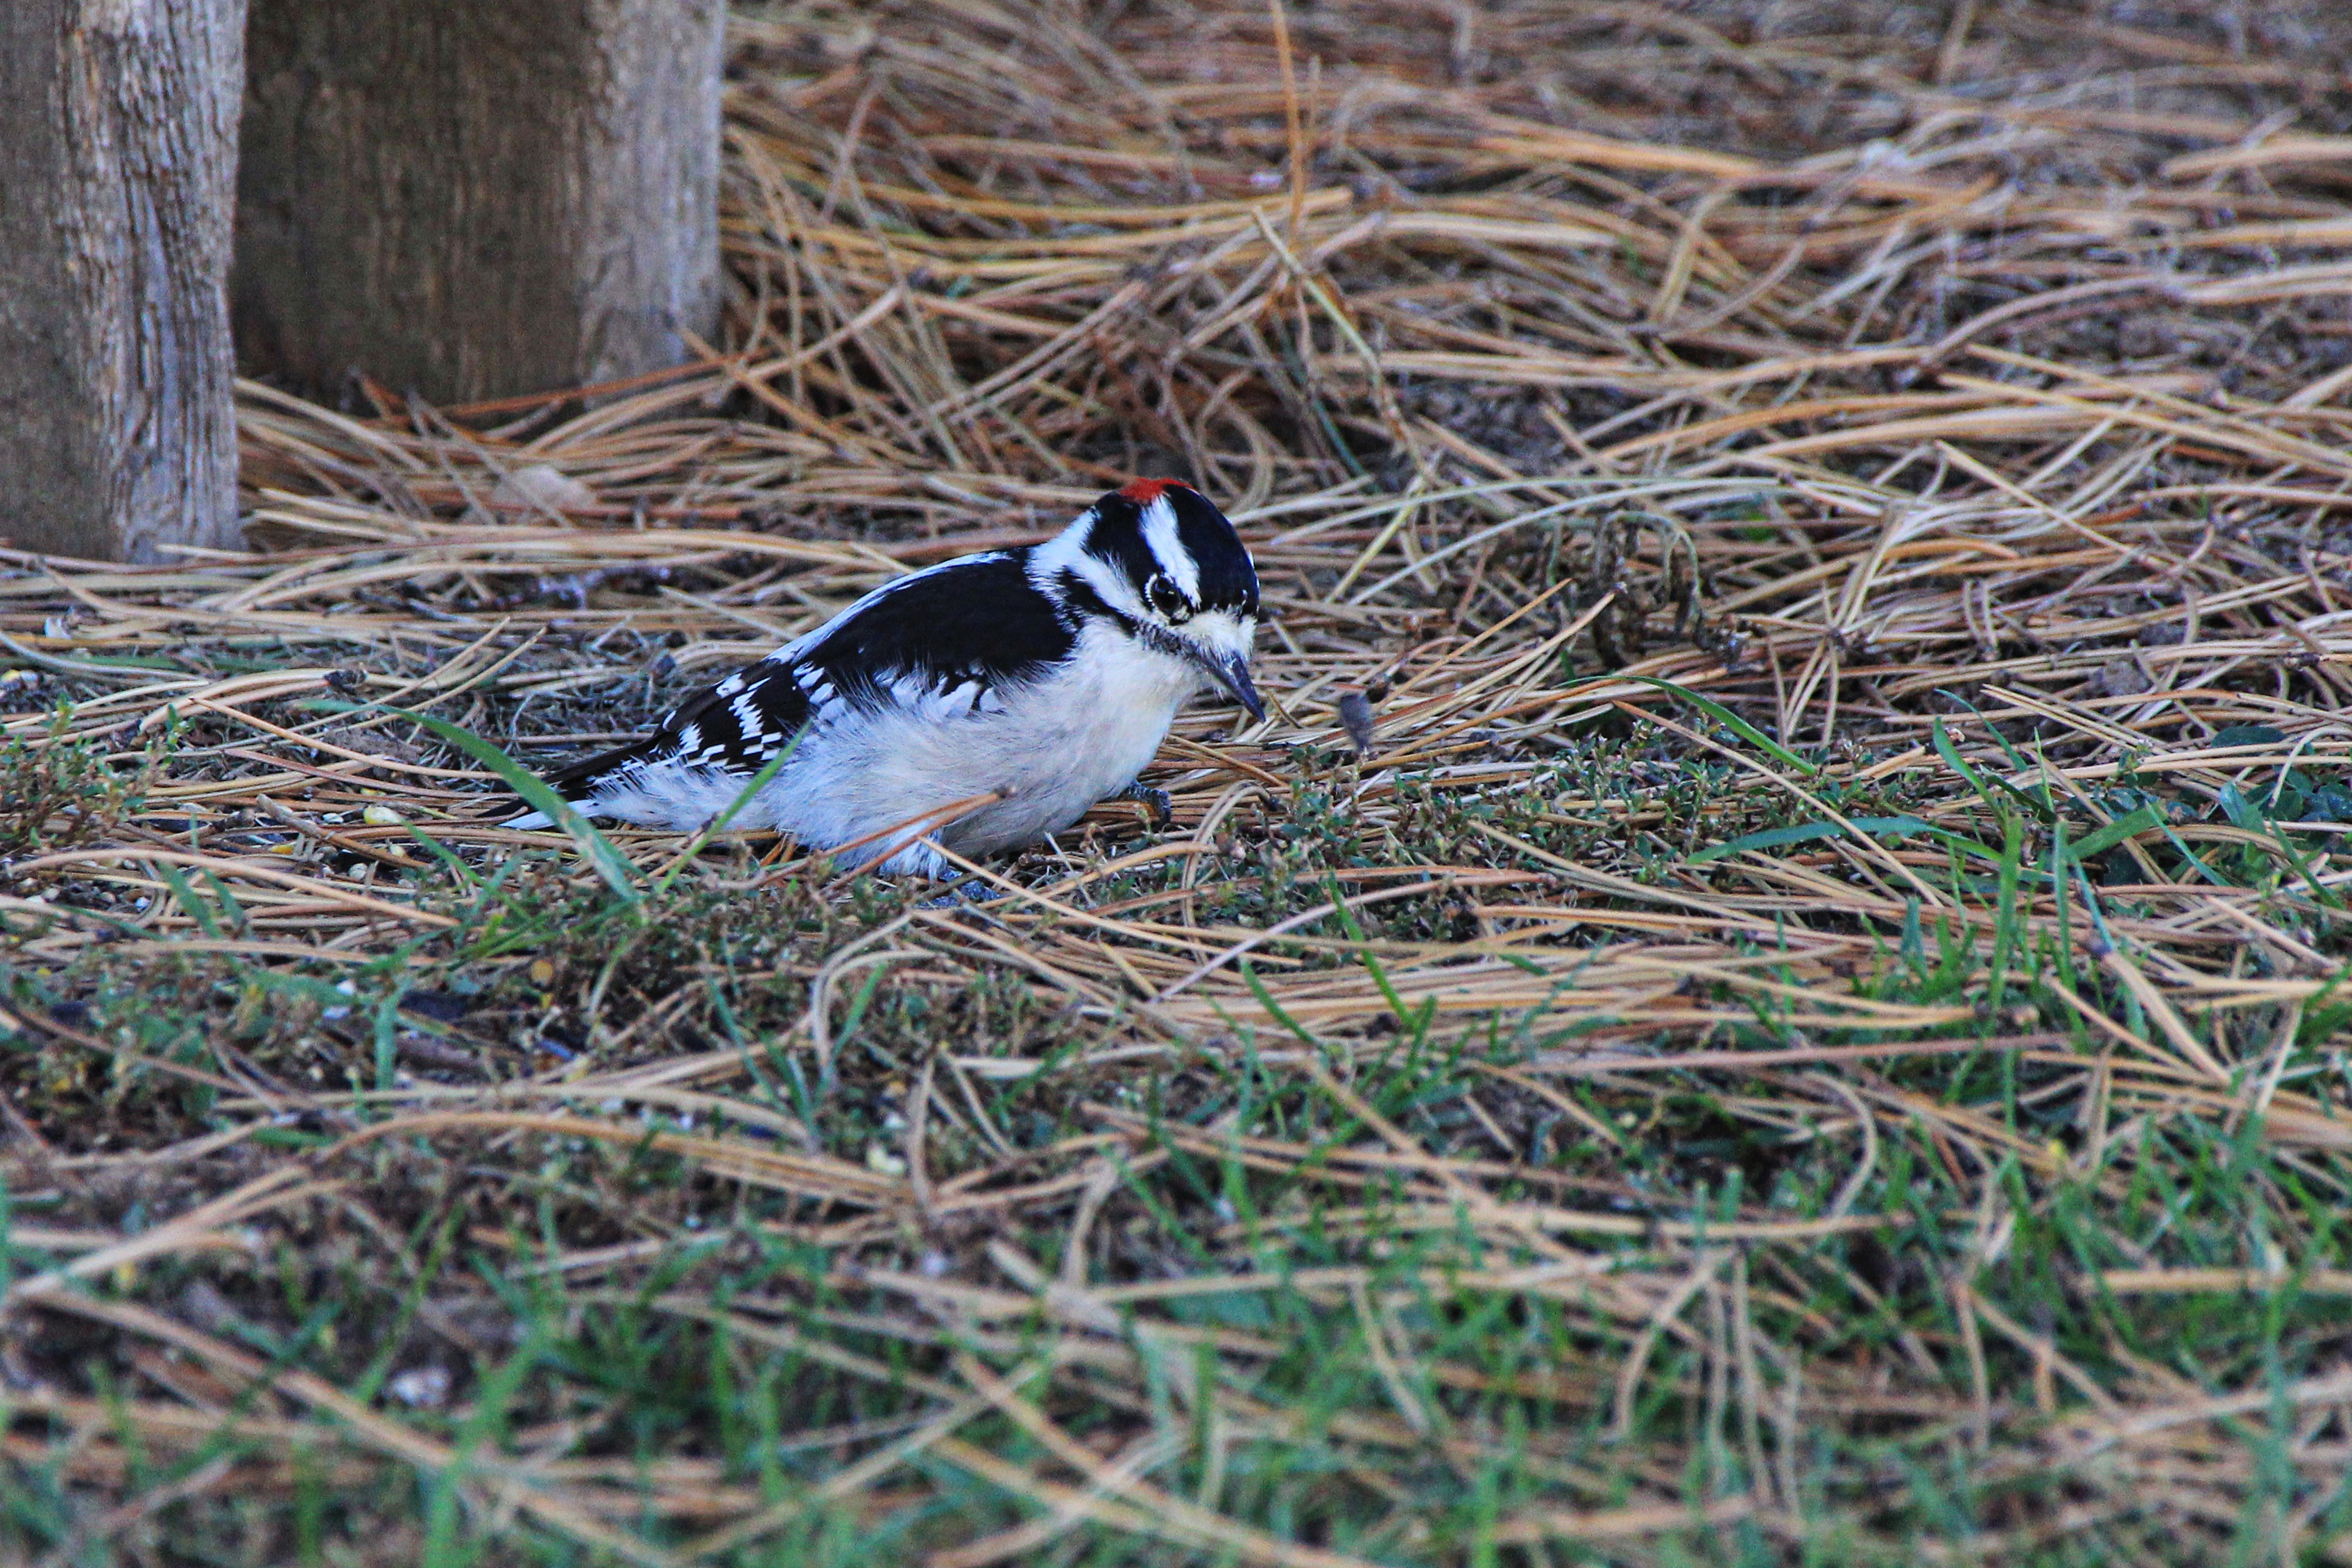 Downy wood pecker